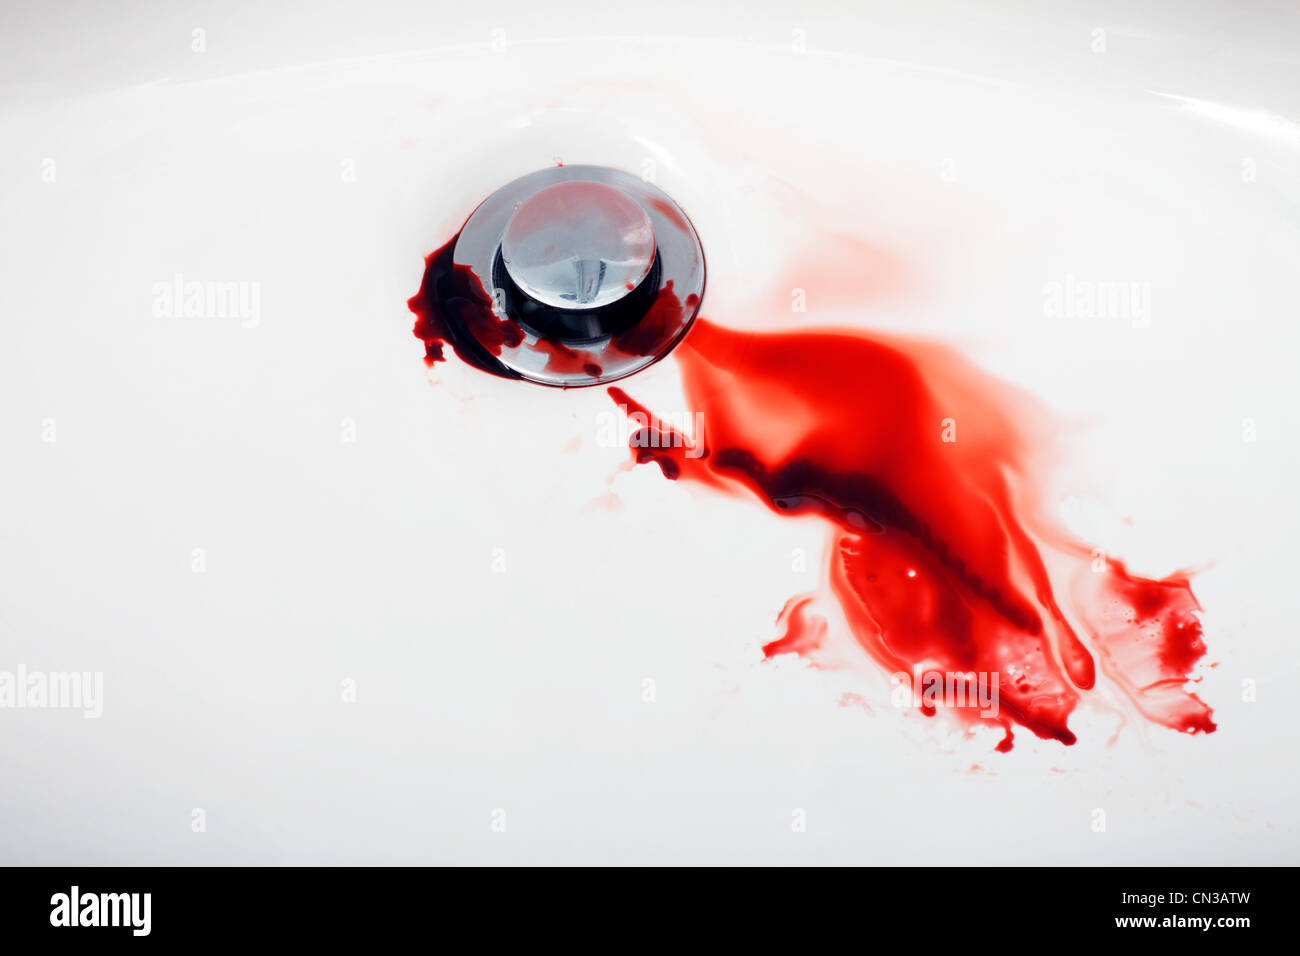 Blood in sink - Stock Image